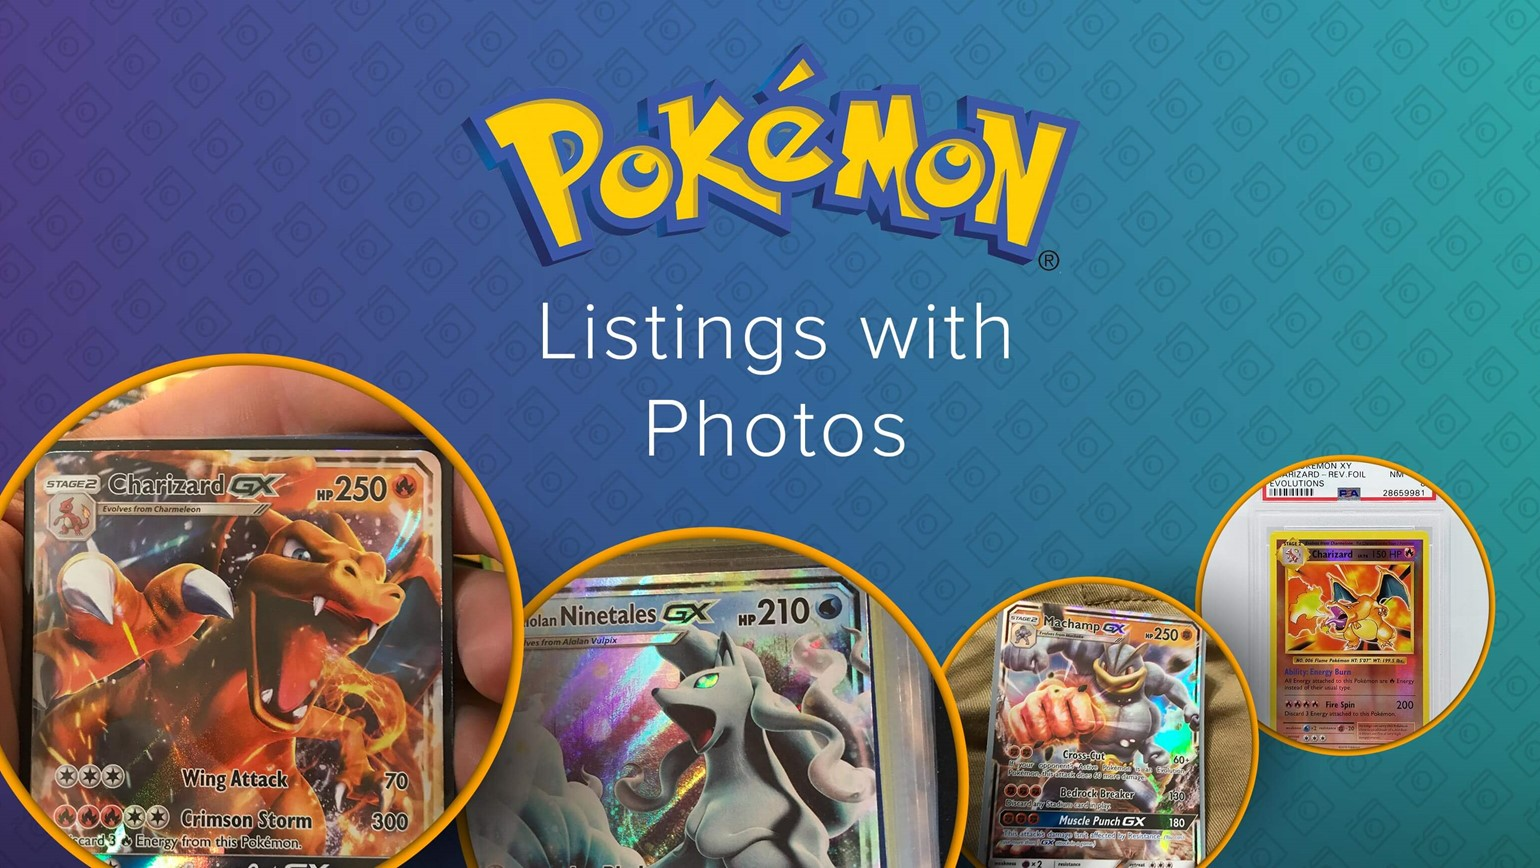 Take Your Pokémon Sales to the Next Level with Listings with Photos